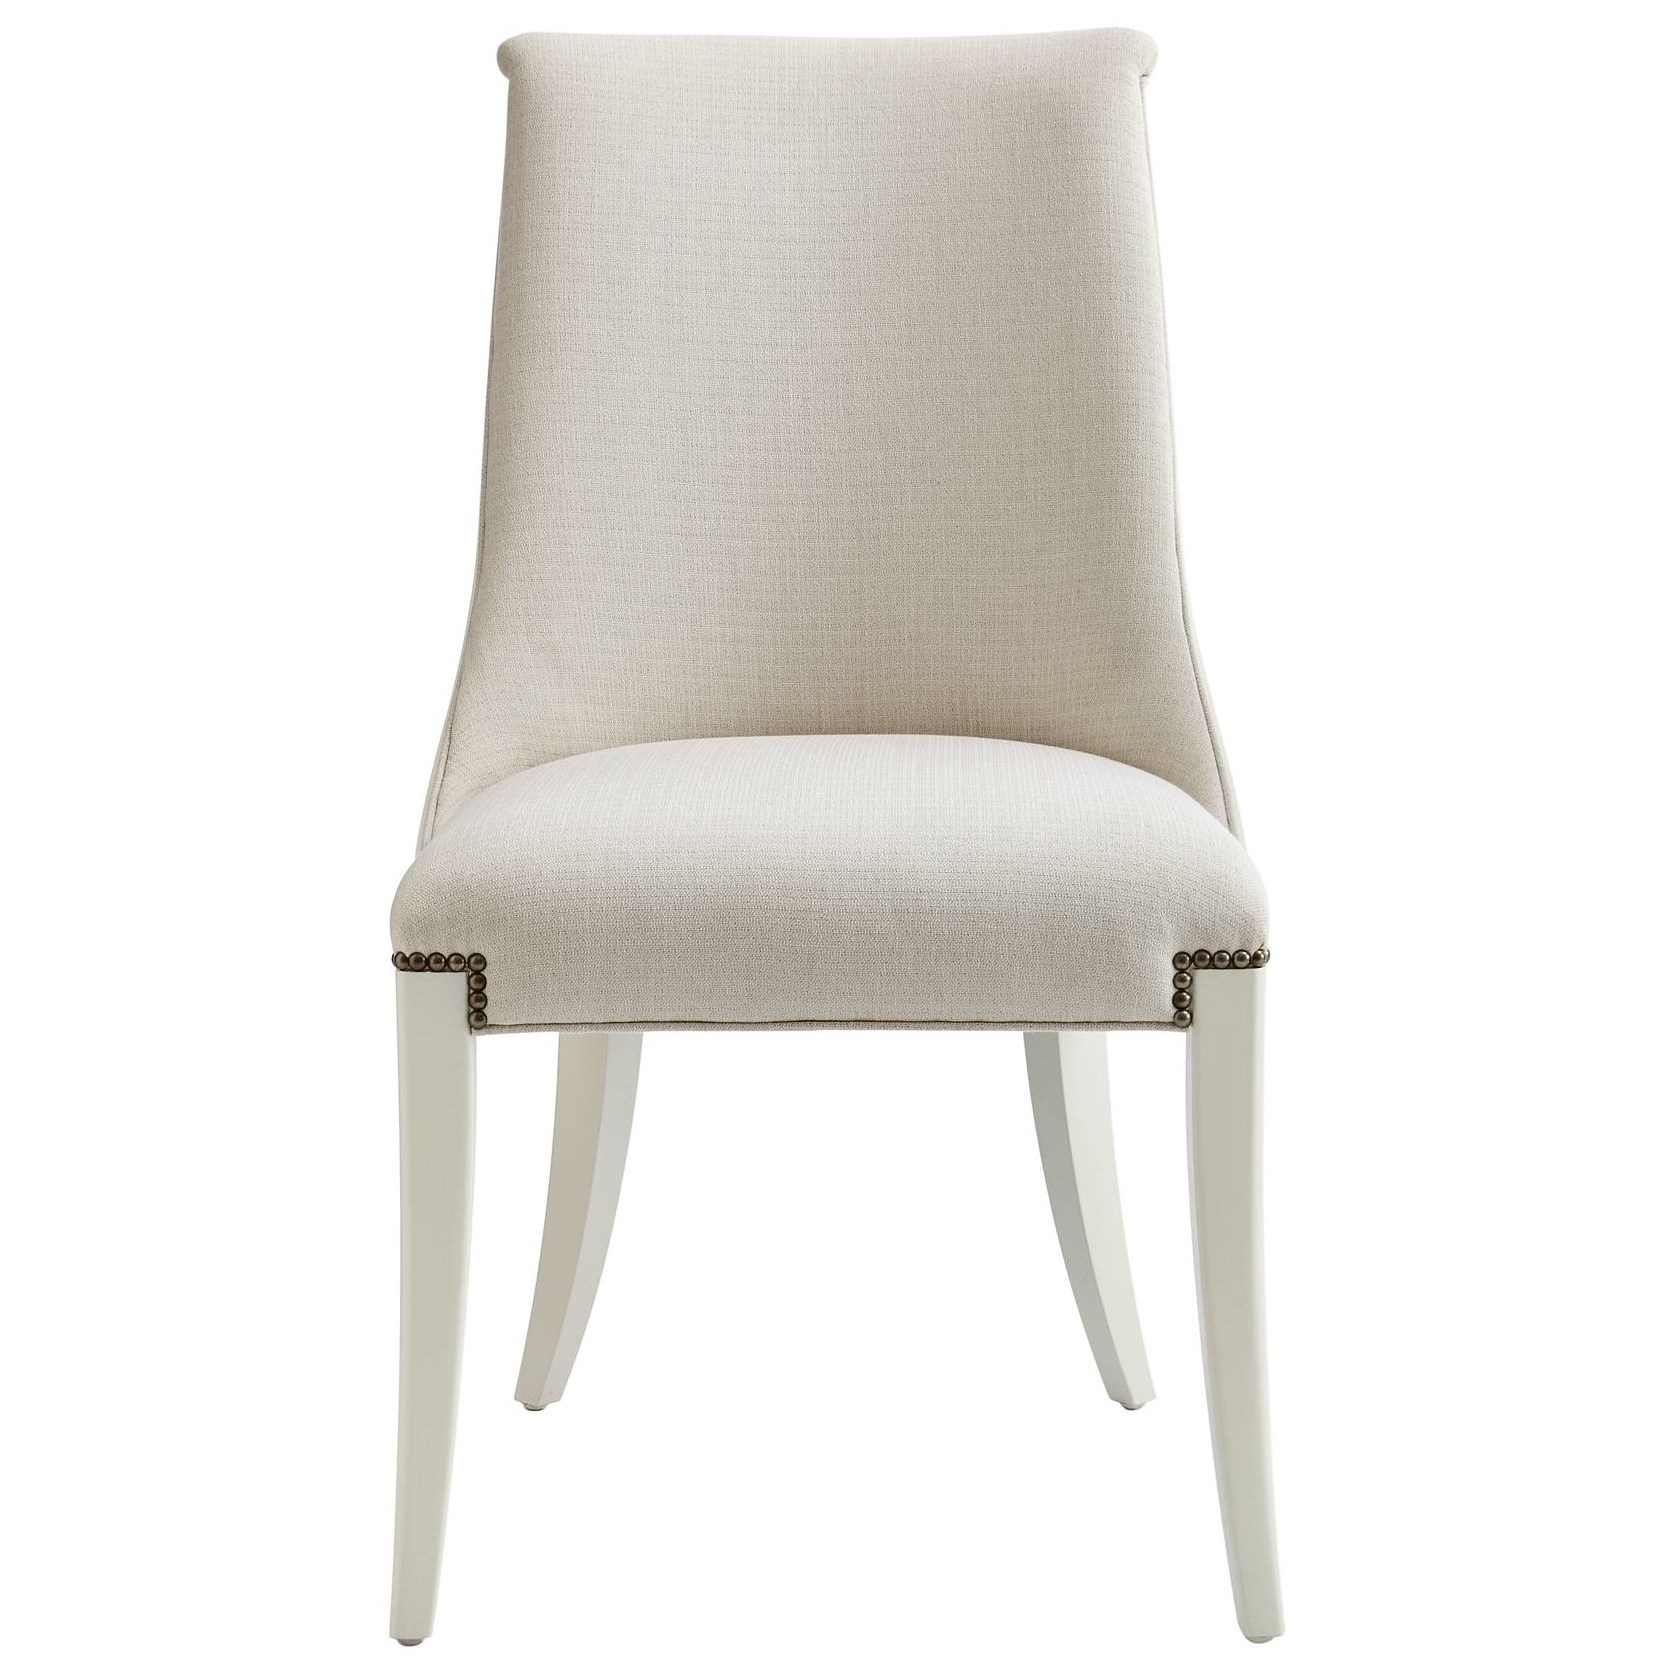 Stanley Furniture Coastal Living Oasis Wilshire Host Chair - Item Number: 527-21-75